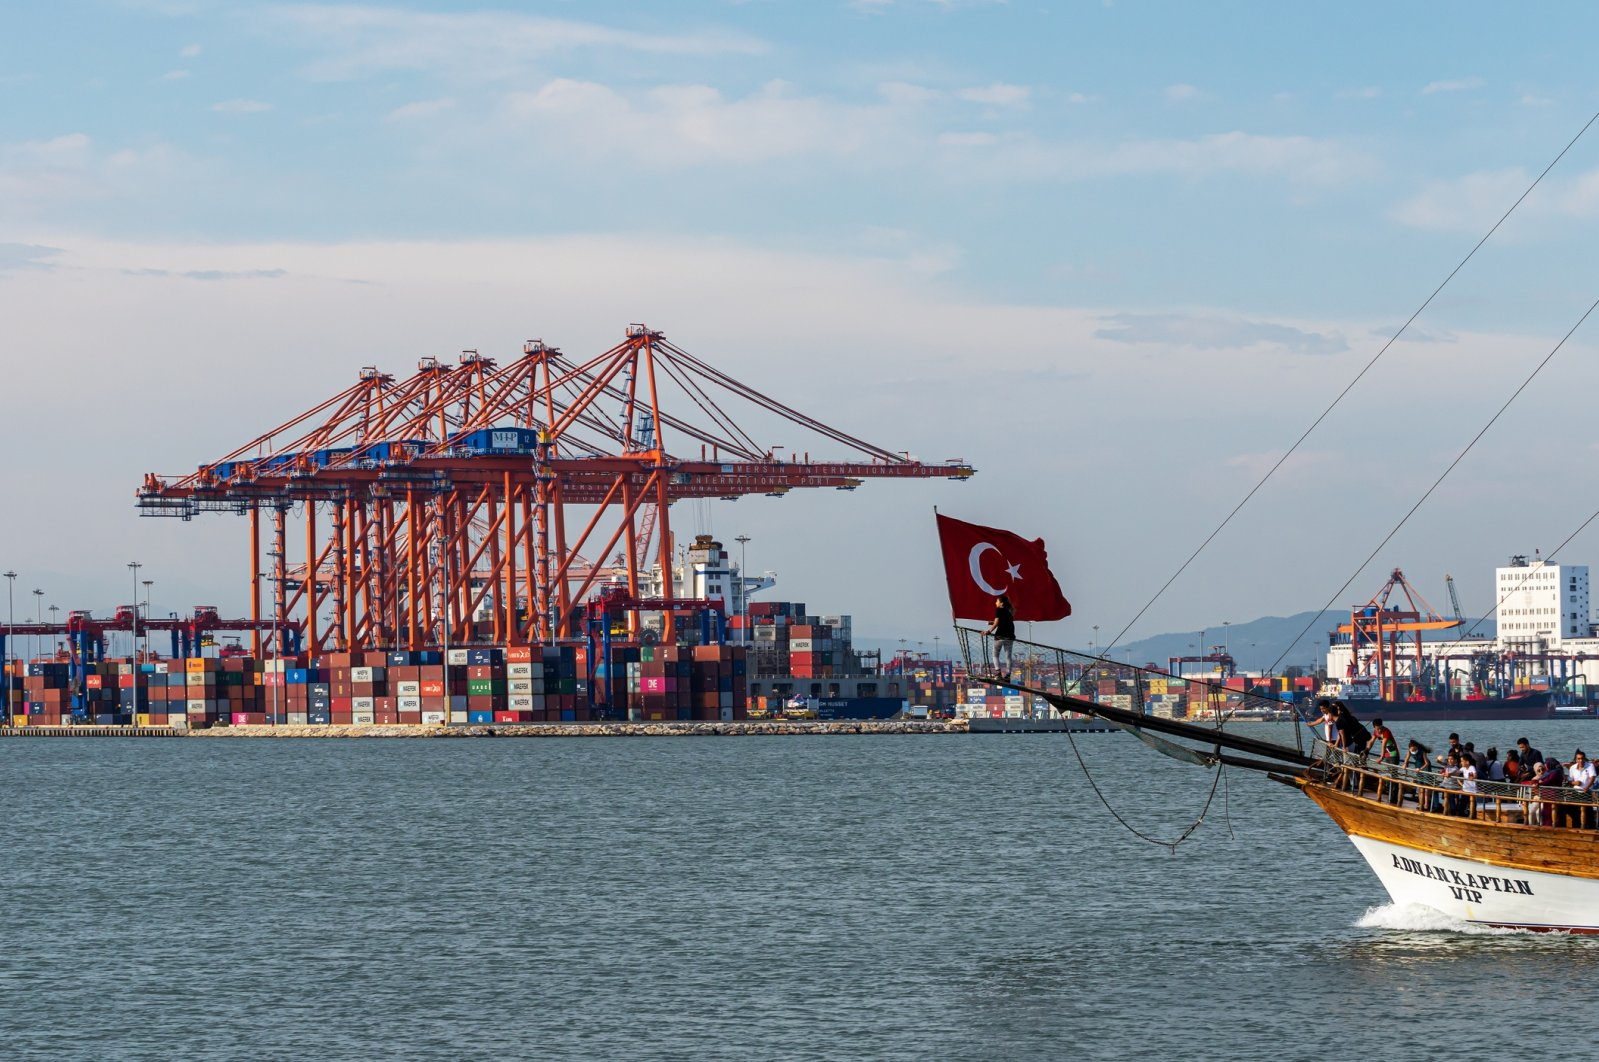 Shipping containers at the Mersin International Port on Turkey's Mediterranean coast, June 14, 2020. (iStock Photo)